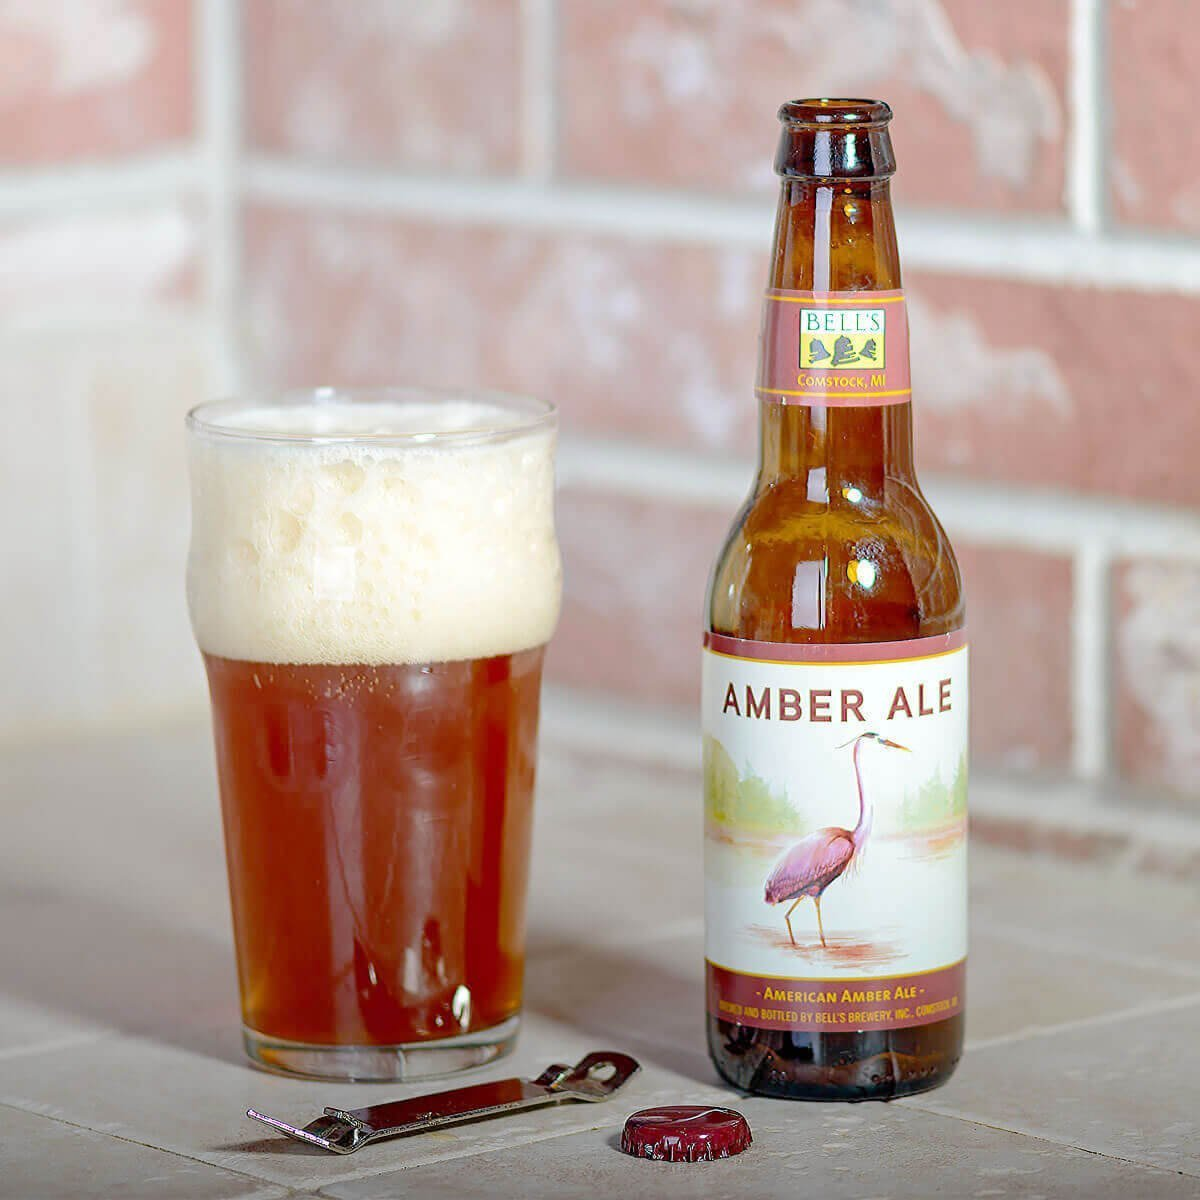 Bell's Amber Ale is an American Amber Ale by Bell's Brewery, Inc. that delivers ample hop flavor with toasty bread and caramel malt.